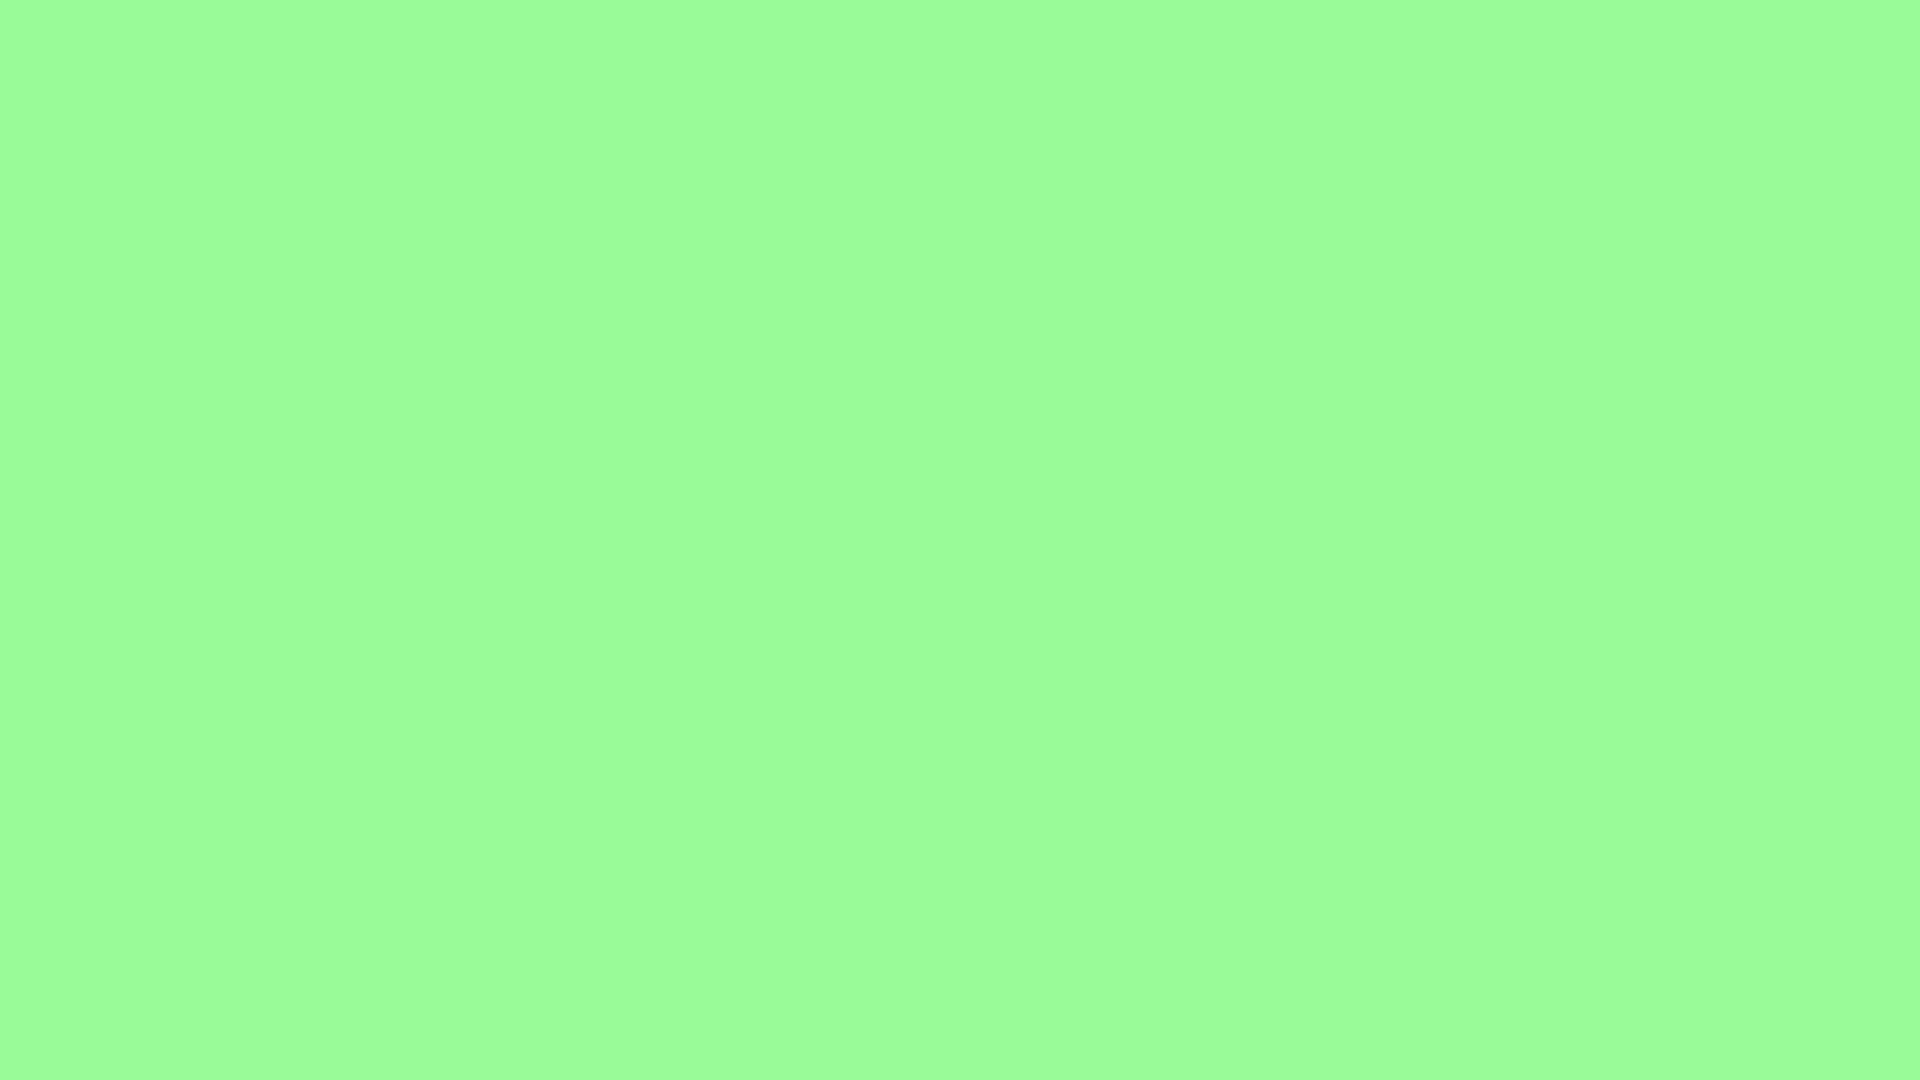 1920x1080 Pale Green Solid Color Background